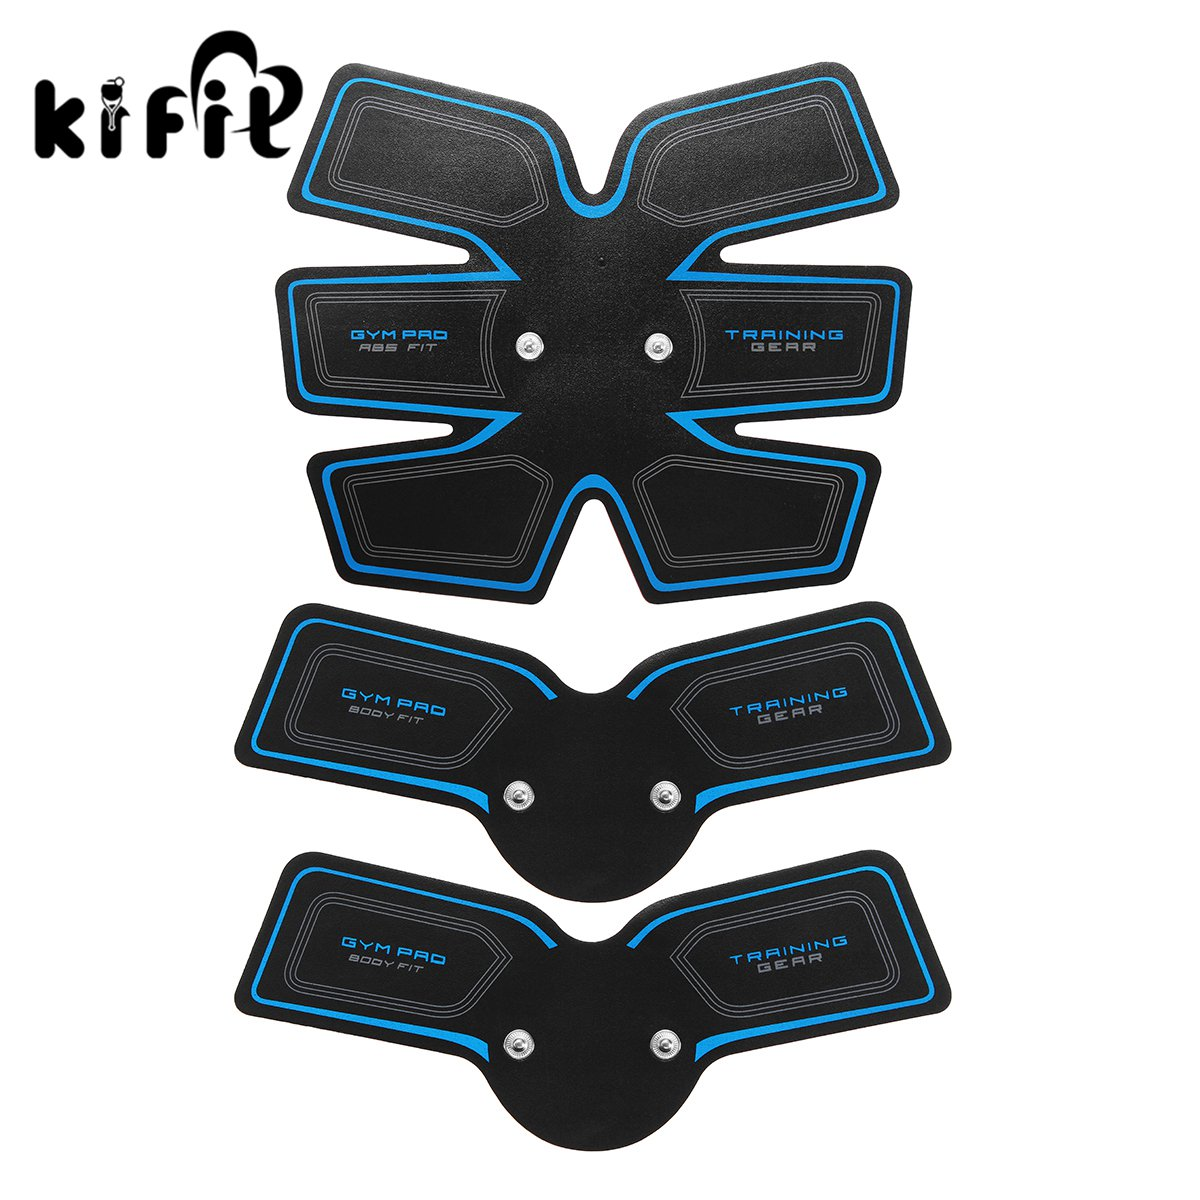 Kifit USB Man Muscle Fit Training Gear Abdominal Body Home Exercise Shape Fitness Set Electric Weight Loss Slimming Massager 1005f fitness equipment ultrathin body massager power board exercise power plate for slimming blood circulaation machine 220v